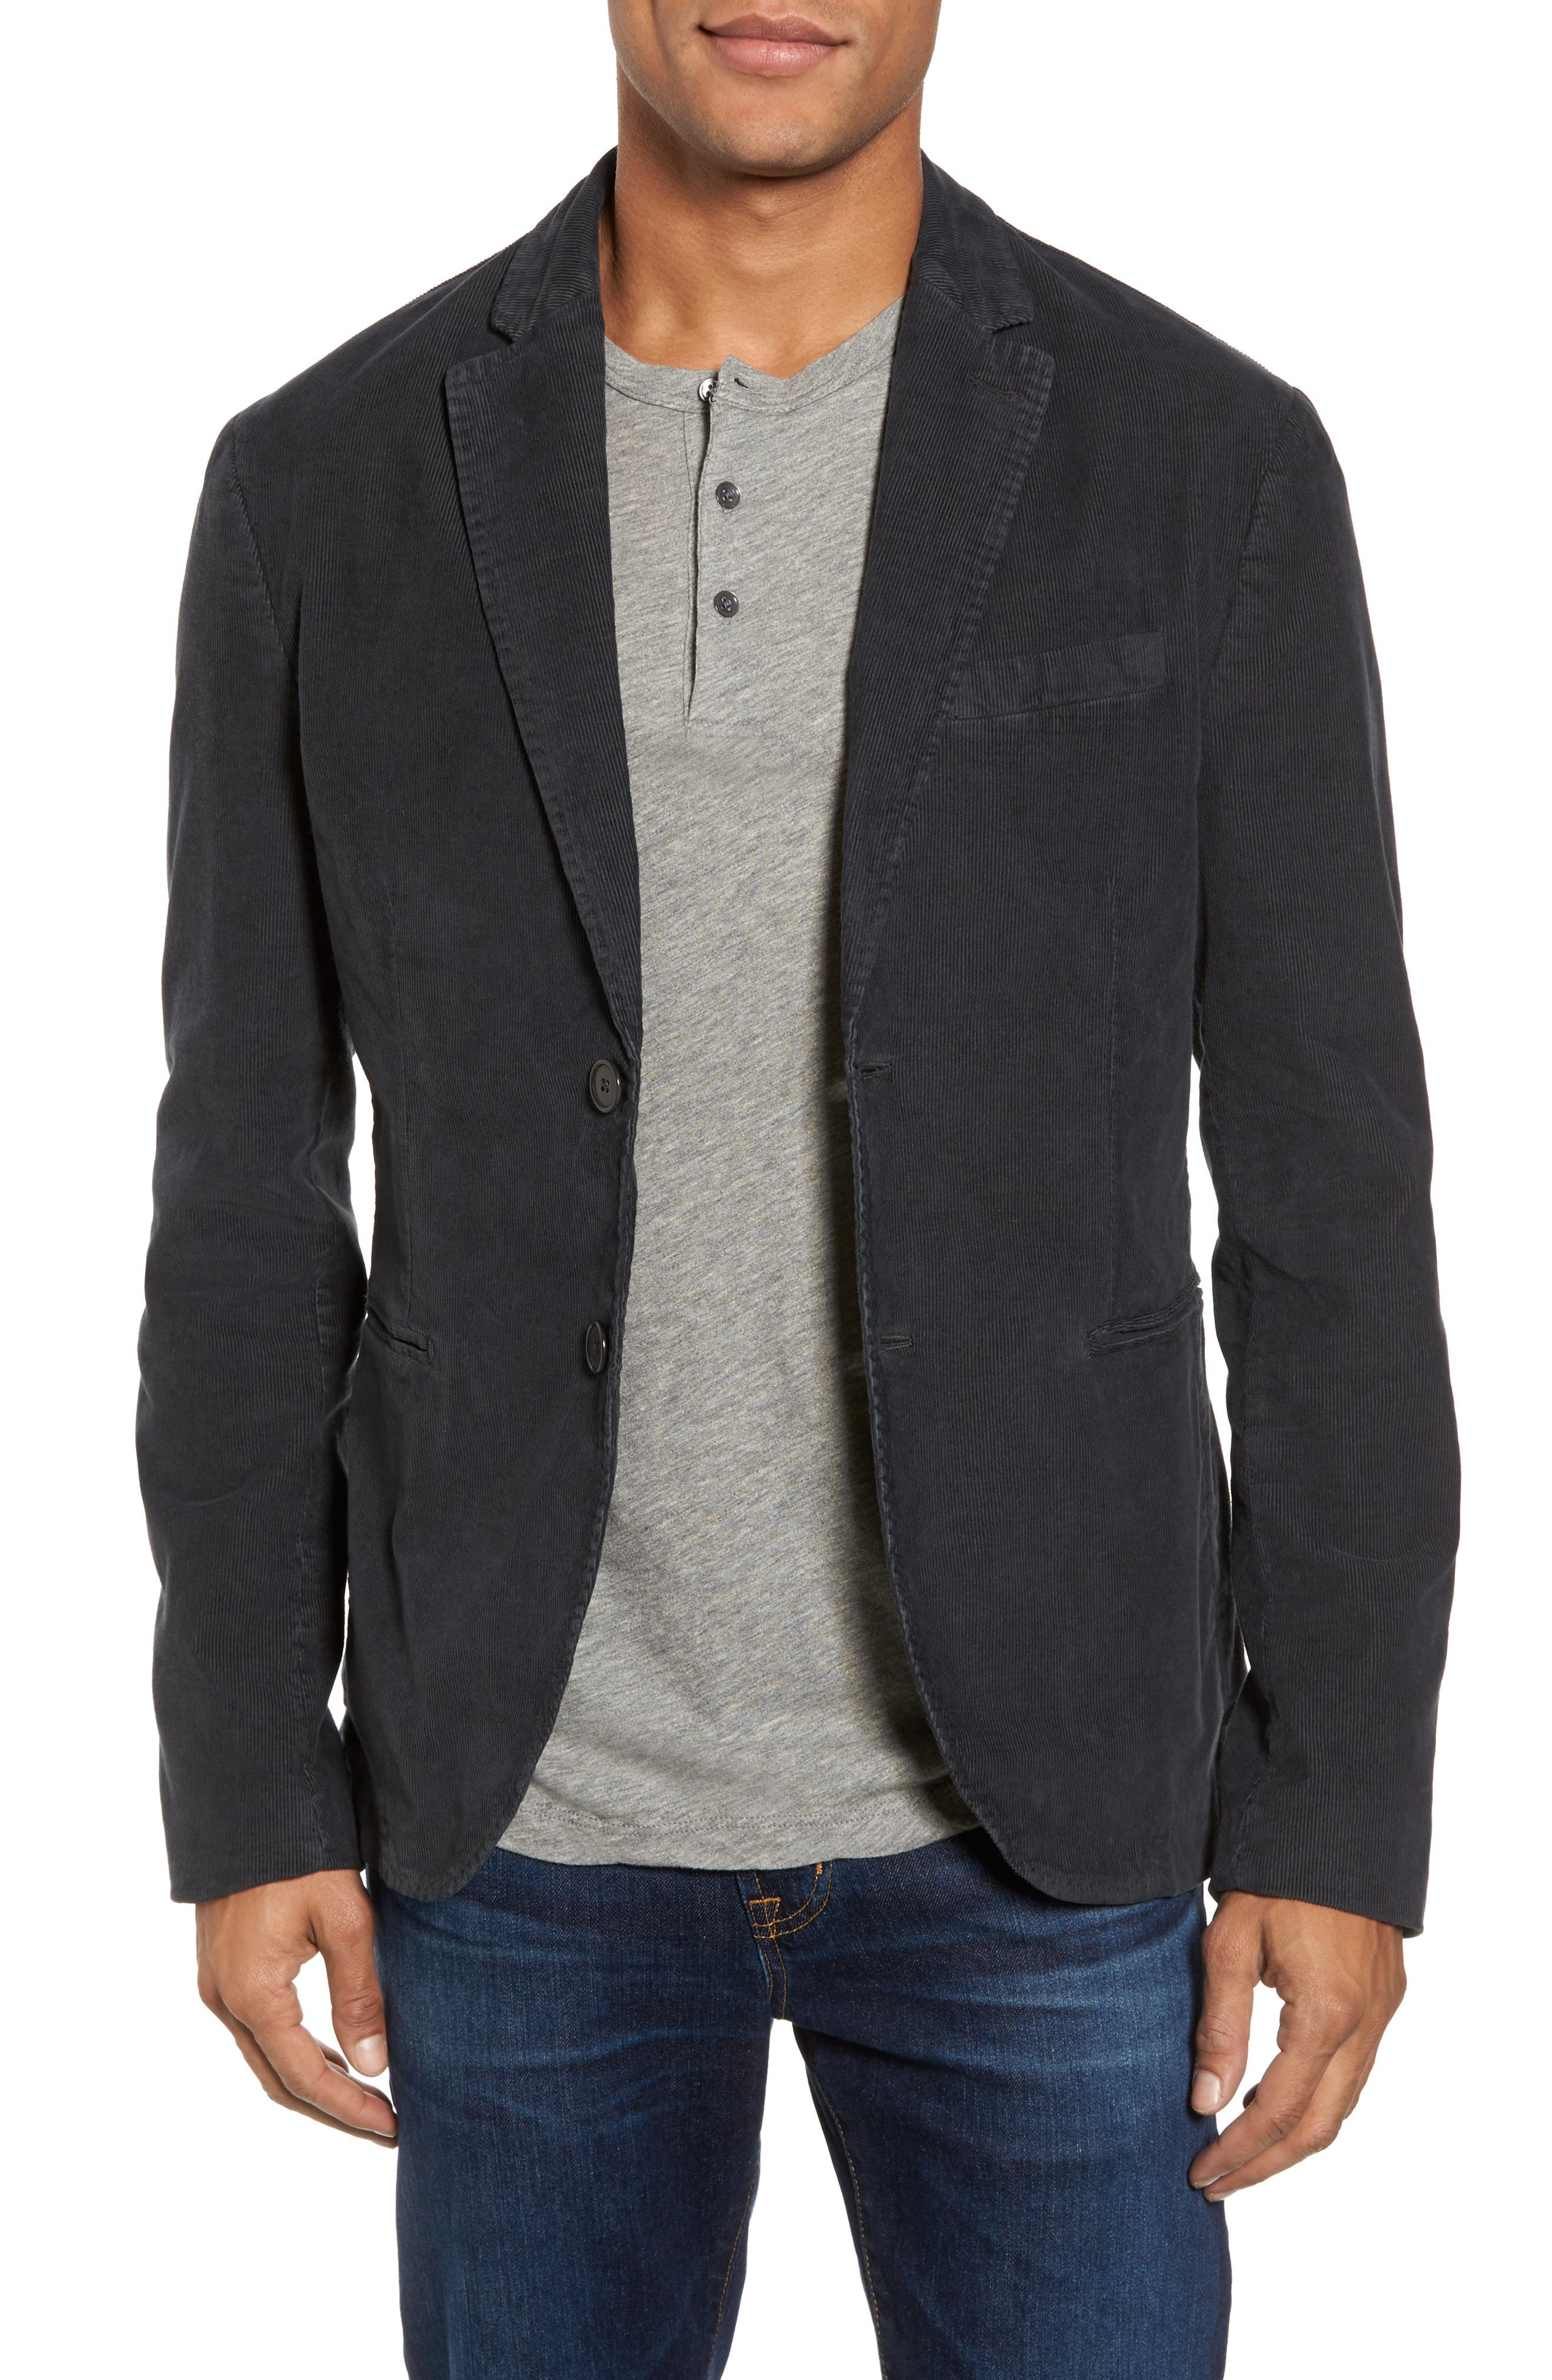 Stretch Corduroy Jacket,                             Main thumbnail 1, color,                             020